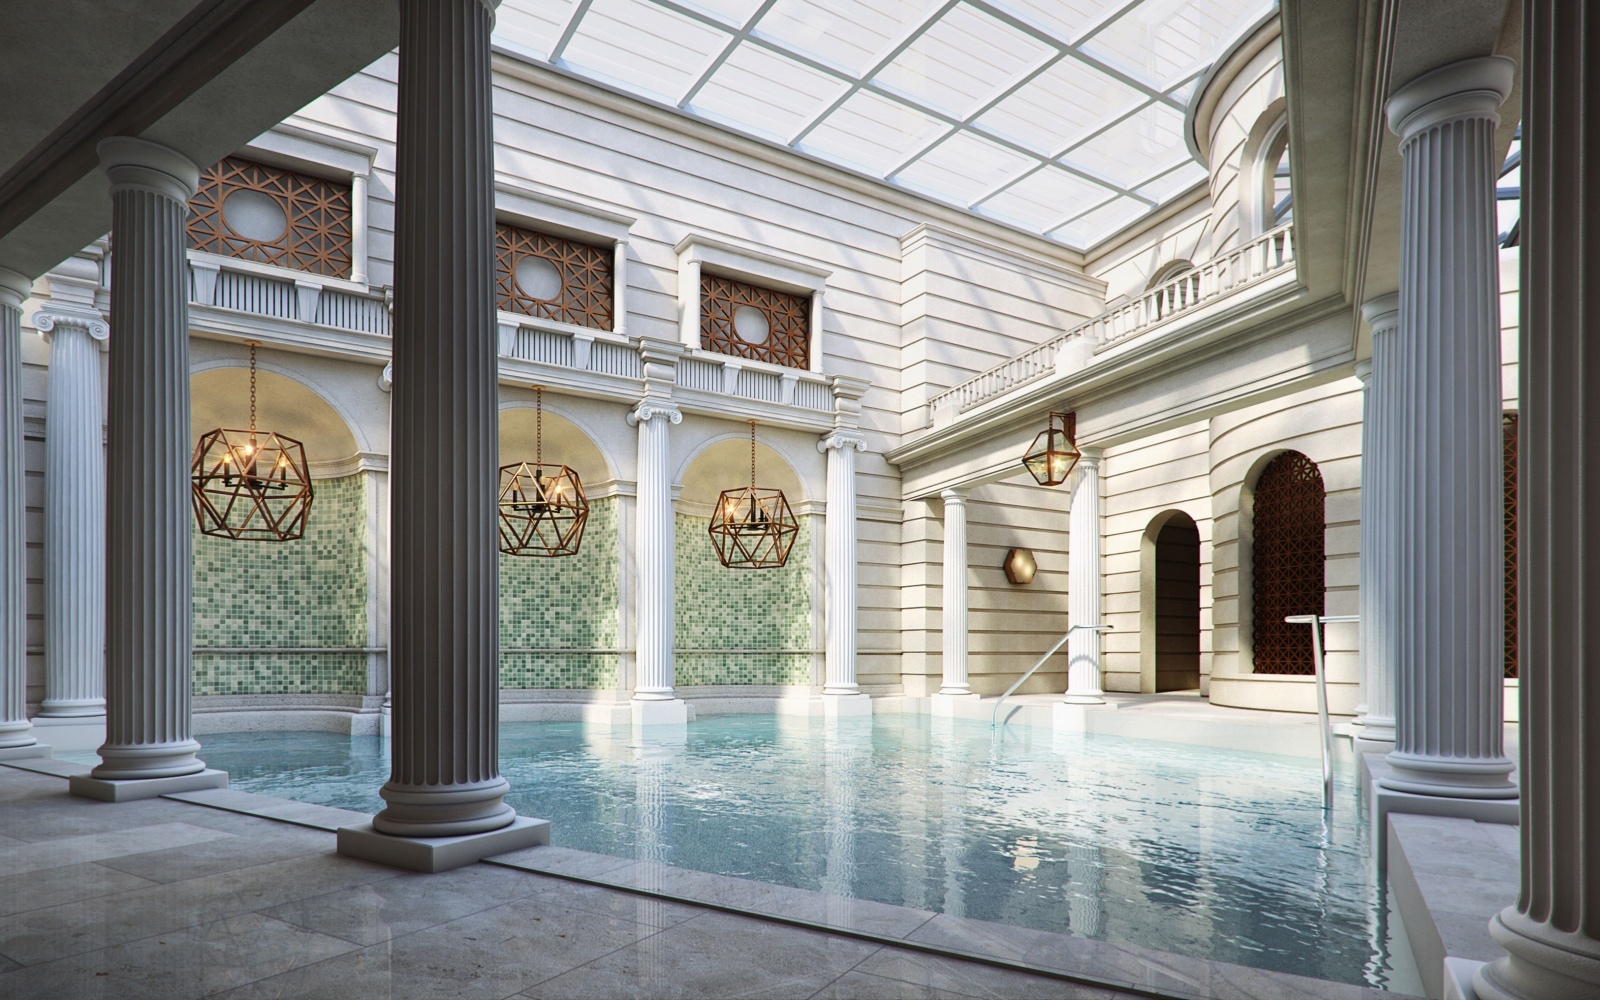 The Gainsborough Spa in Bath, England